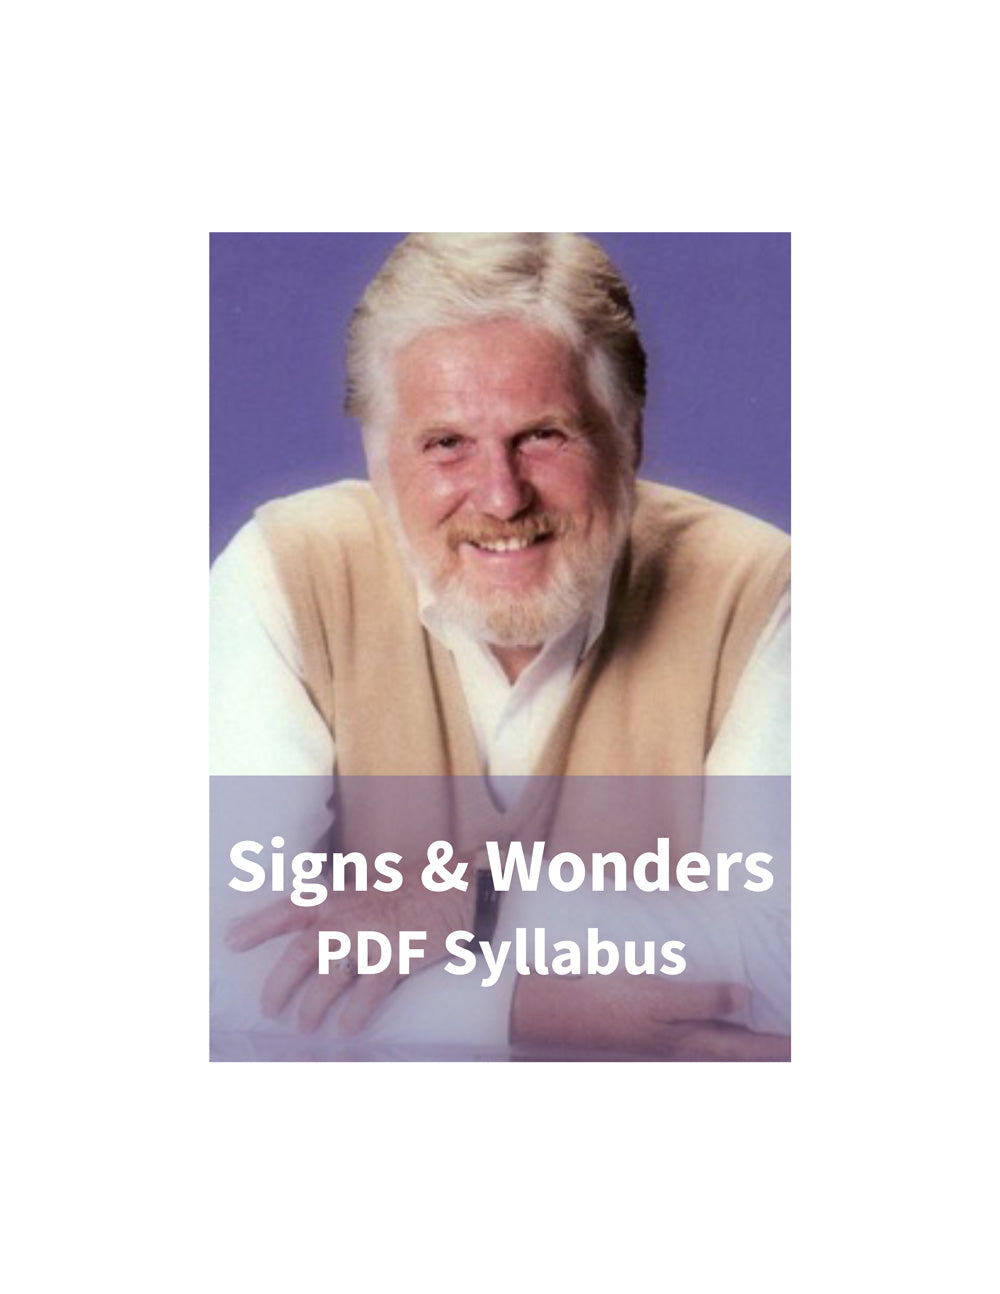 Signs & Wonders Syllabus – PDF